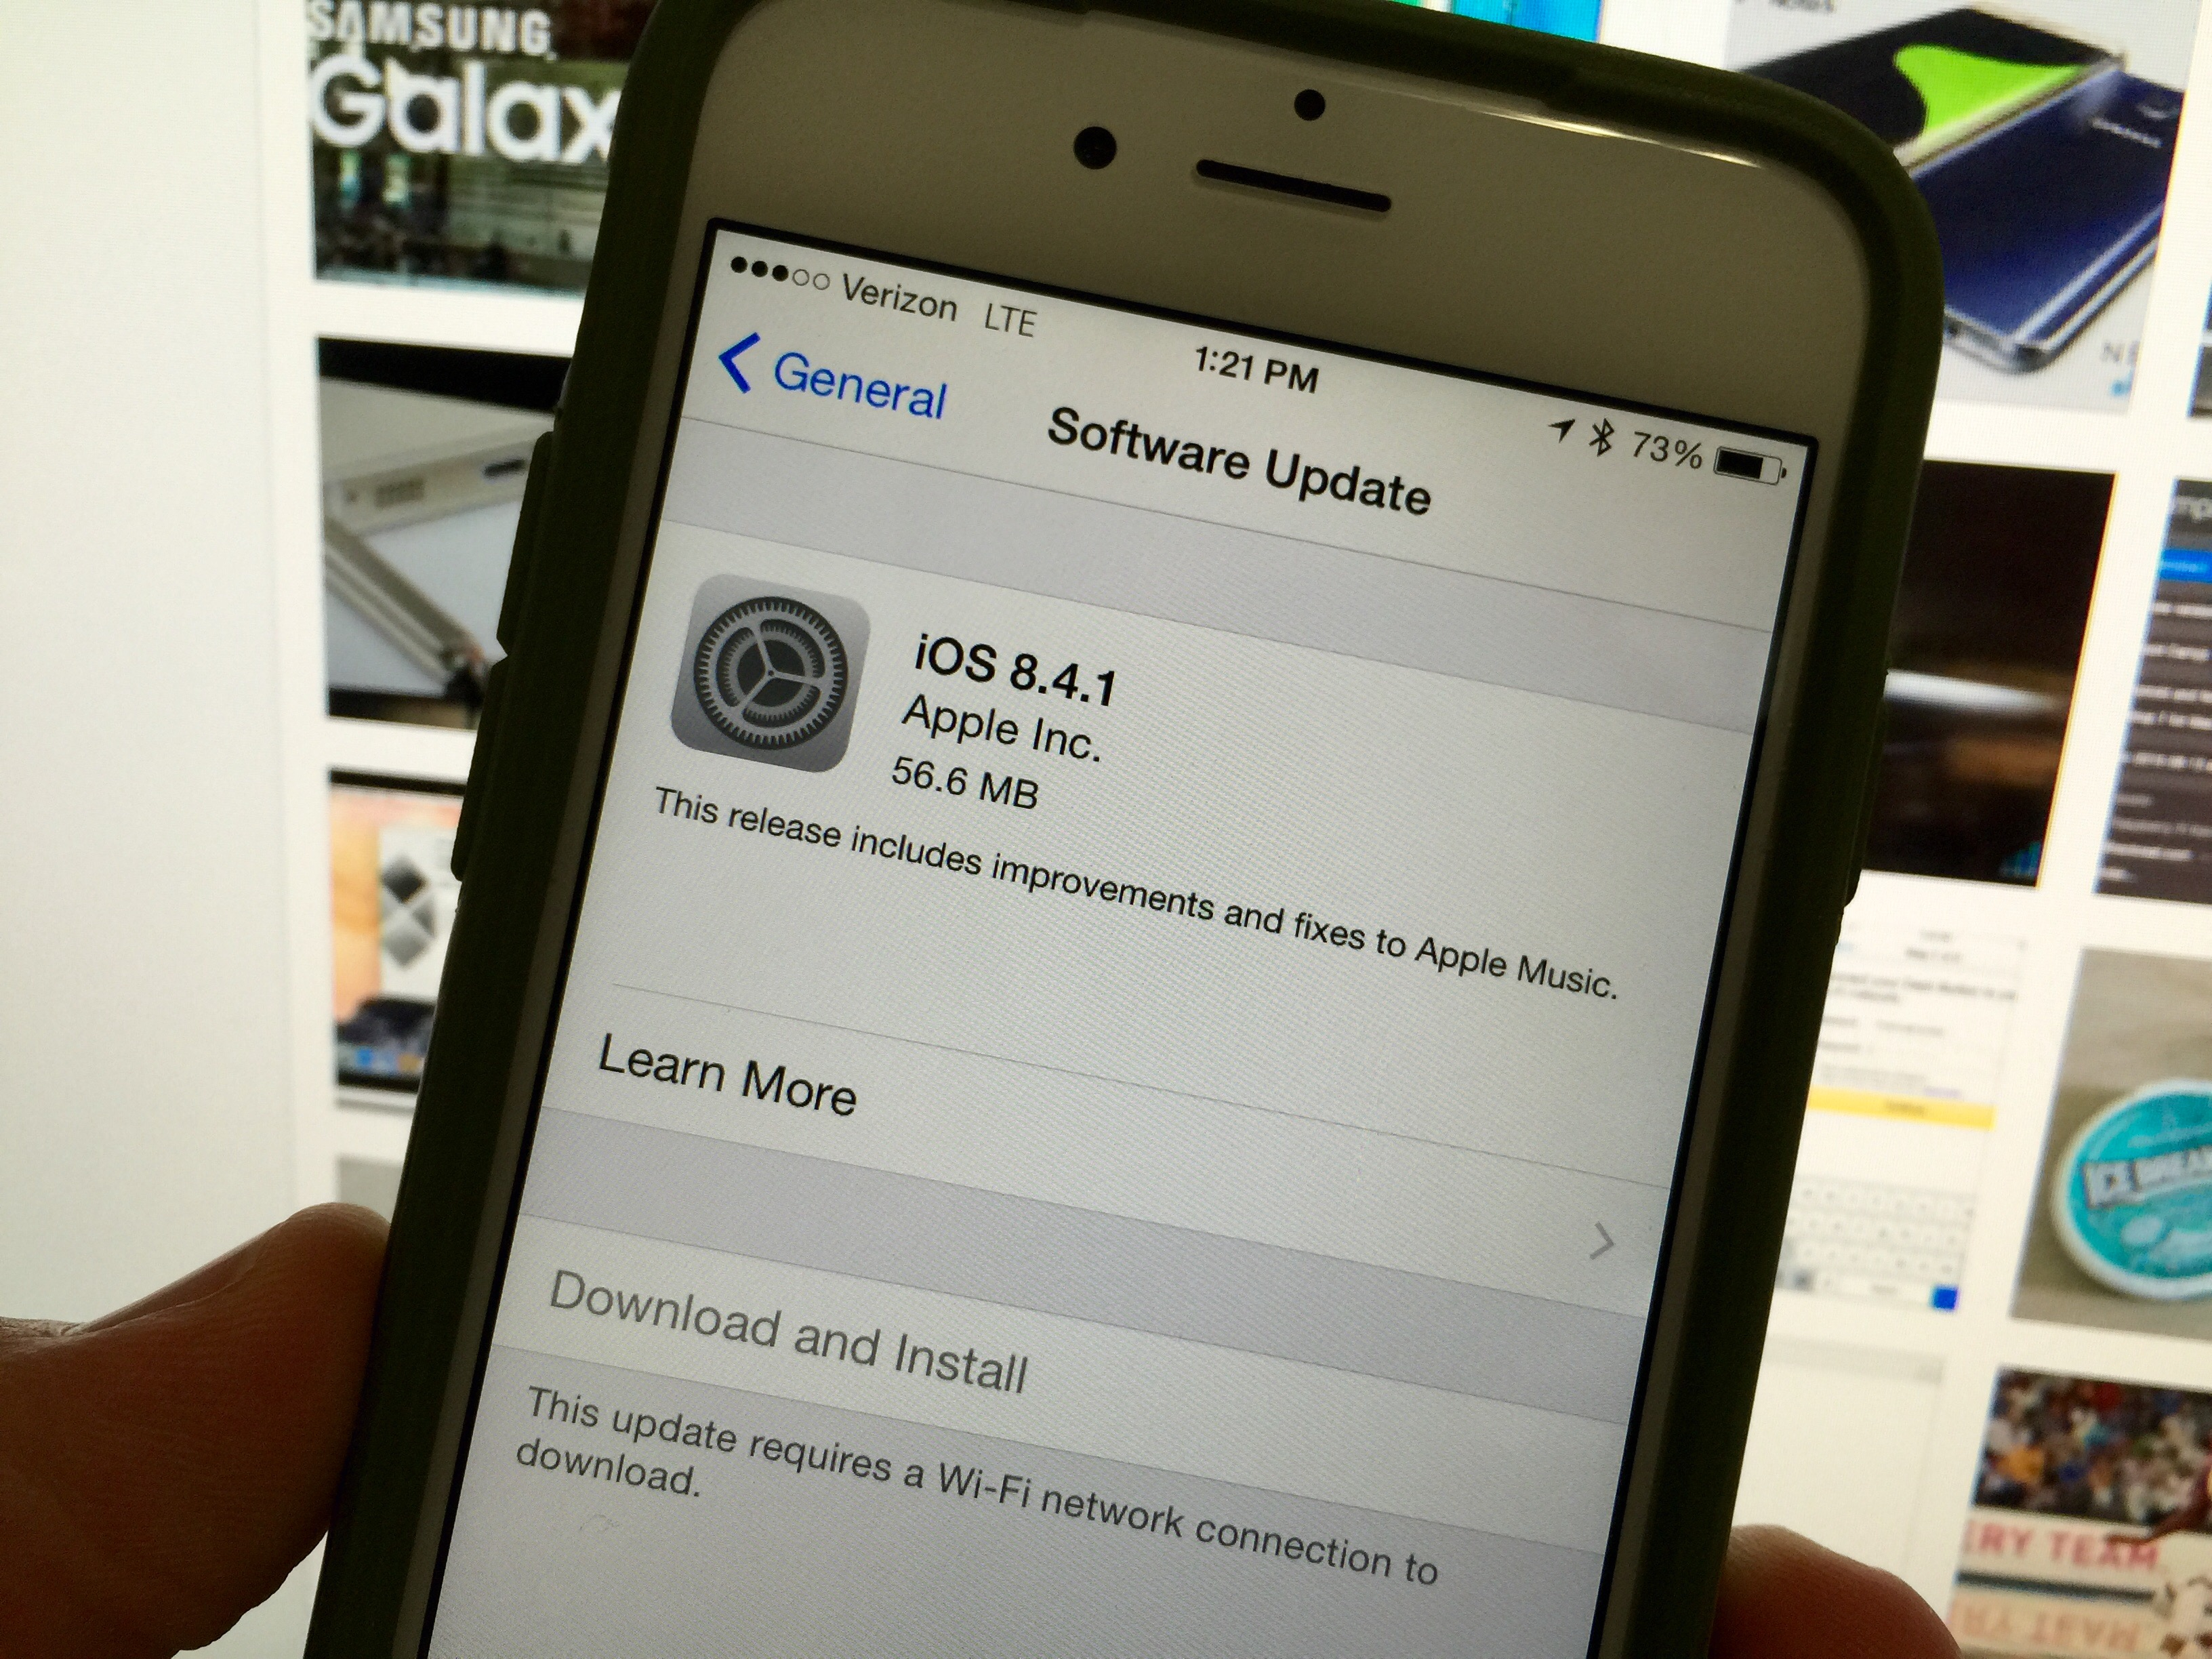 Learn how to install iOS 8.4.1 on your iPhone, iPad or iPhone.